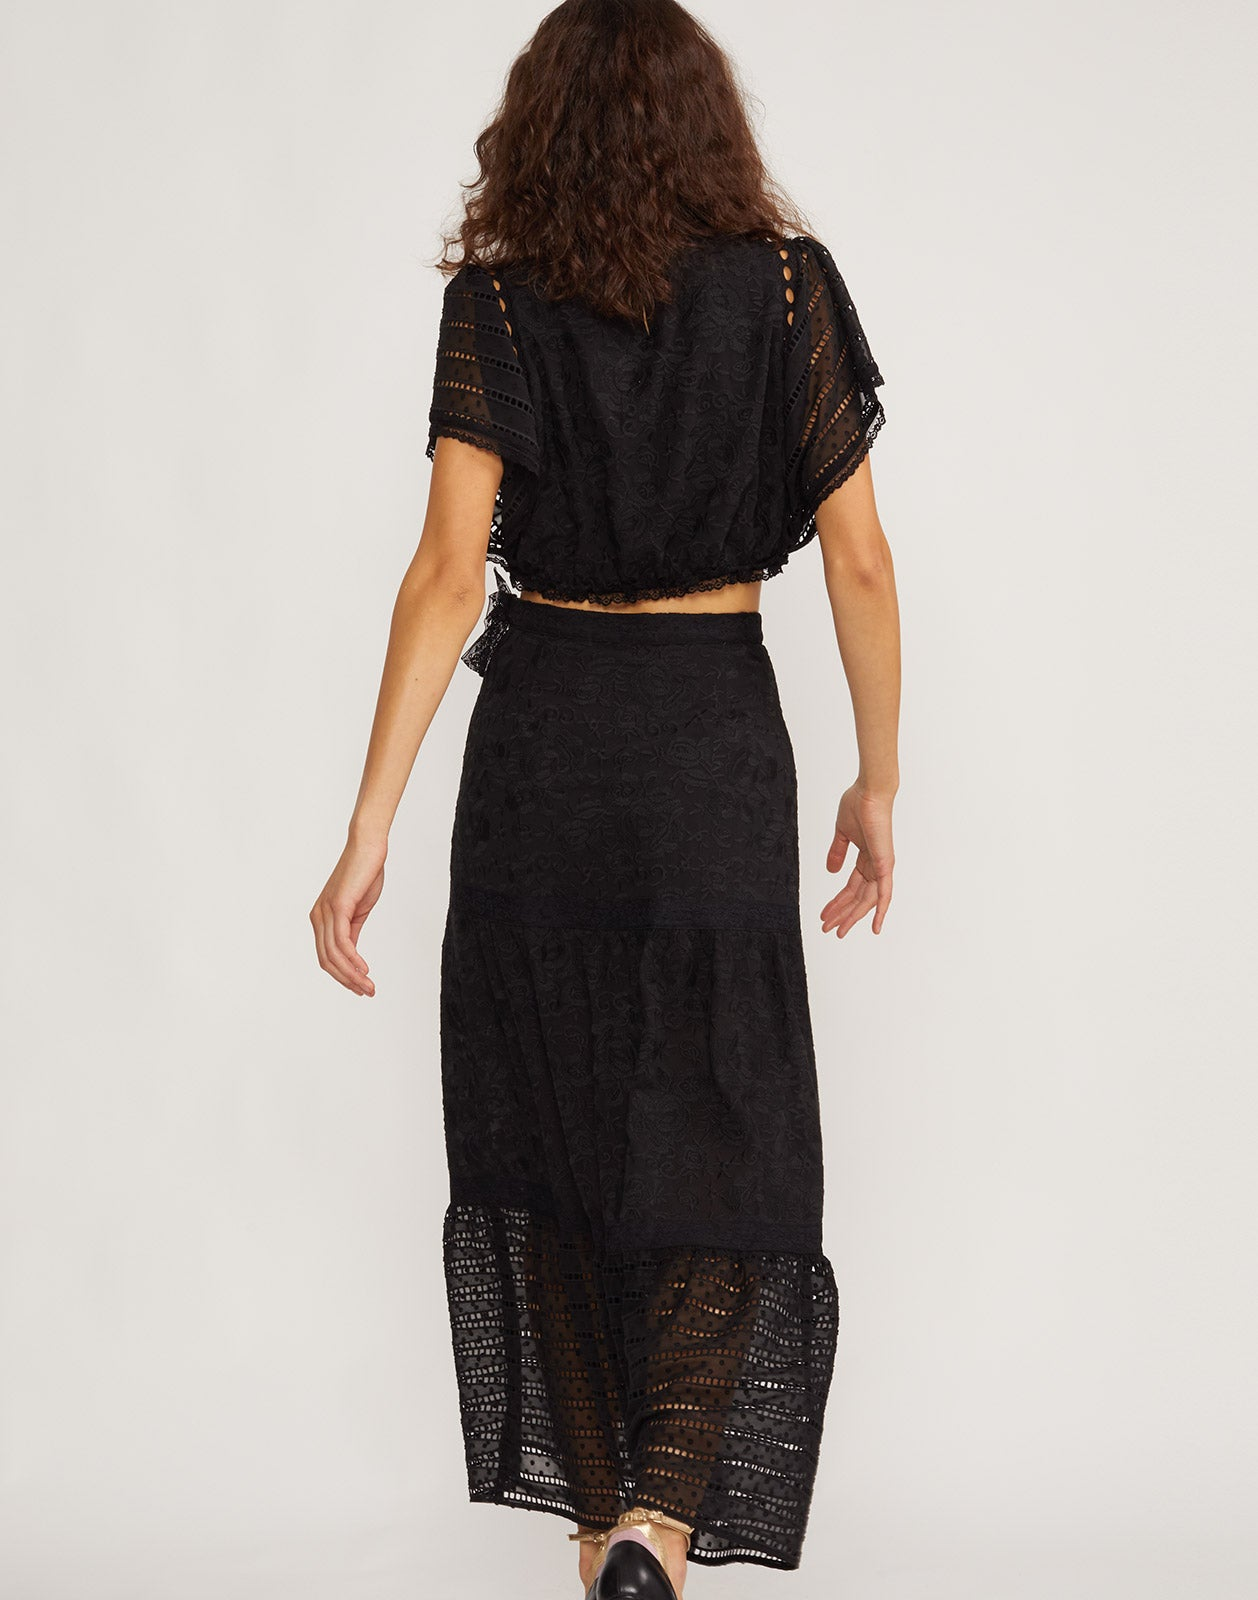 Back view of model wearing Wicker Park Lace Eyelet skirt and top.